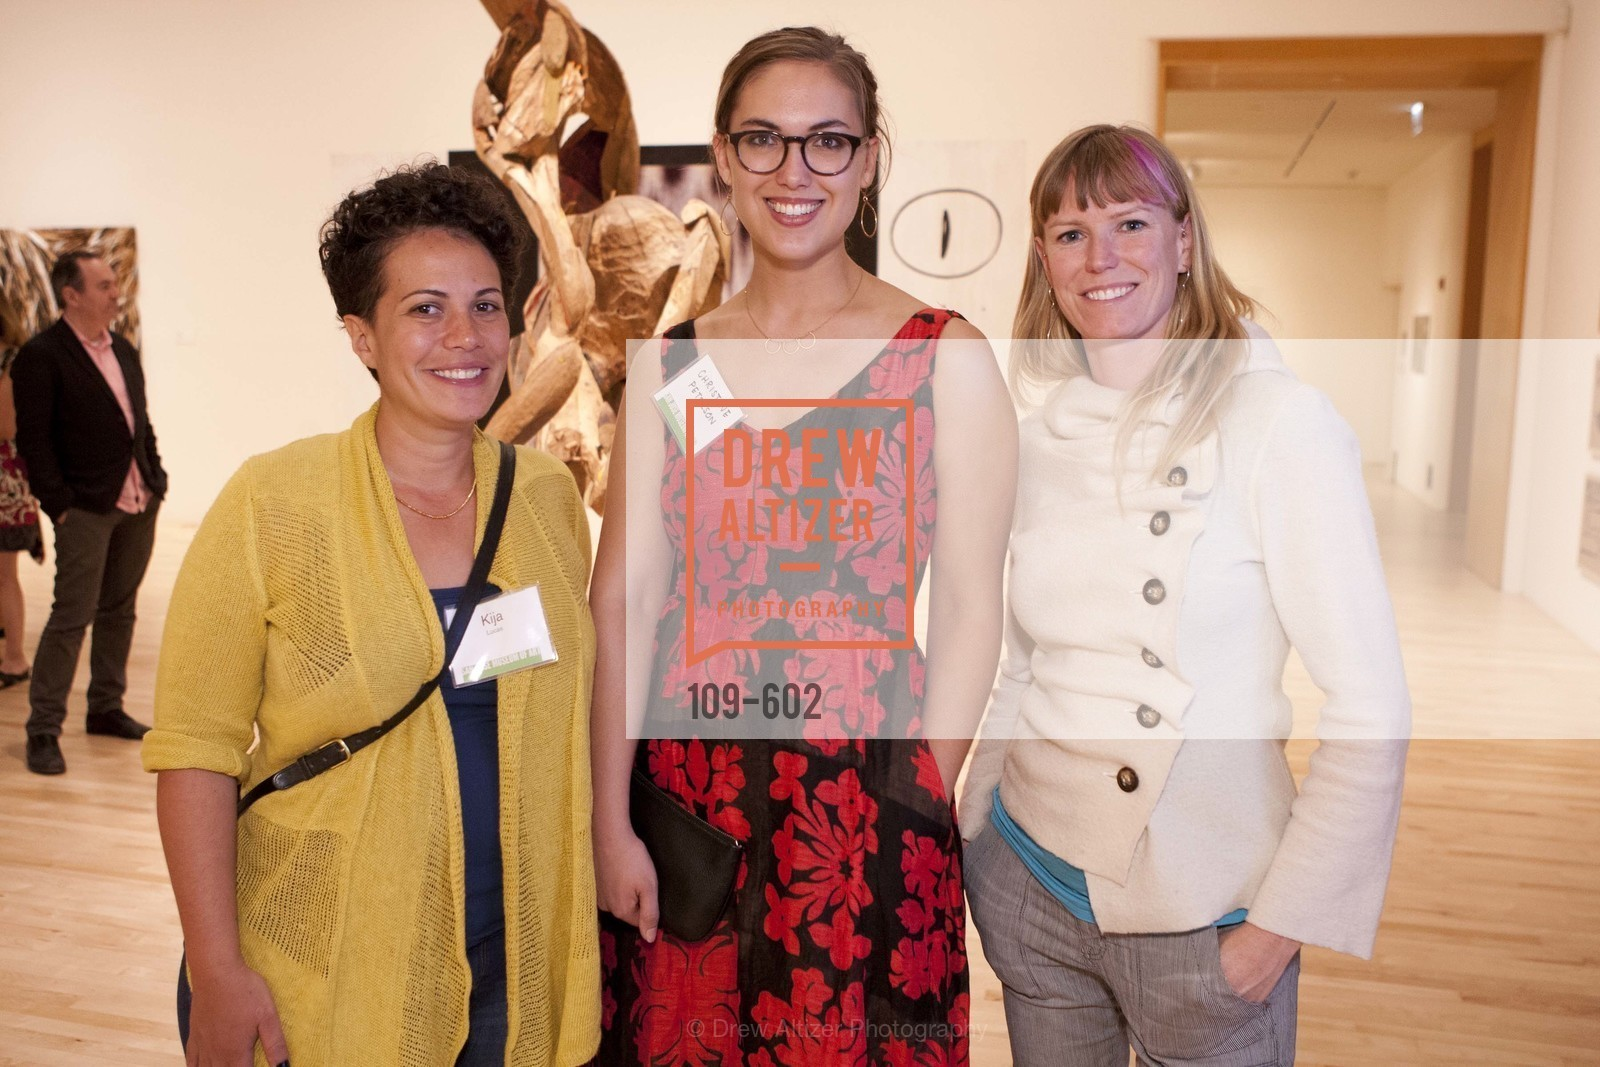 Kija Lucas, Christine Peterson, Jennifer Berry, SAN JOSE MUSEUM OF ART Fall Reception Opening, US, October 8th, 2014,Drew Altizer, Drew Altizer Photography, full-service agency, private events, San Francisco photographer, photographer california